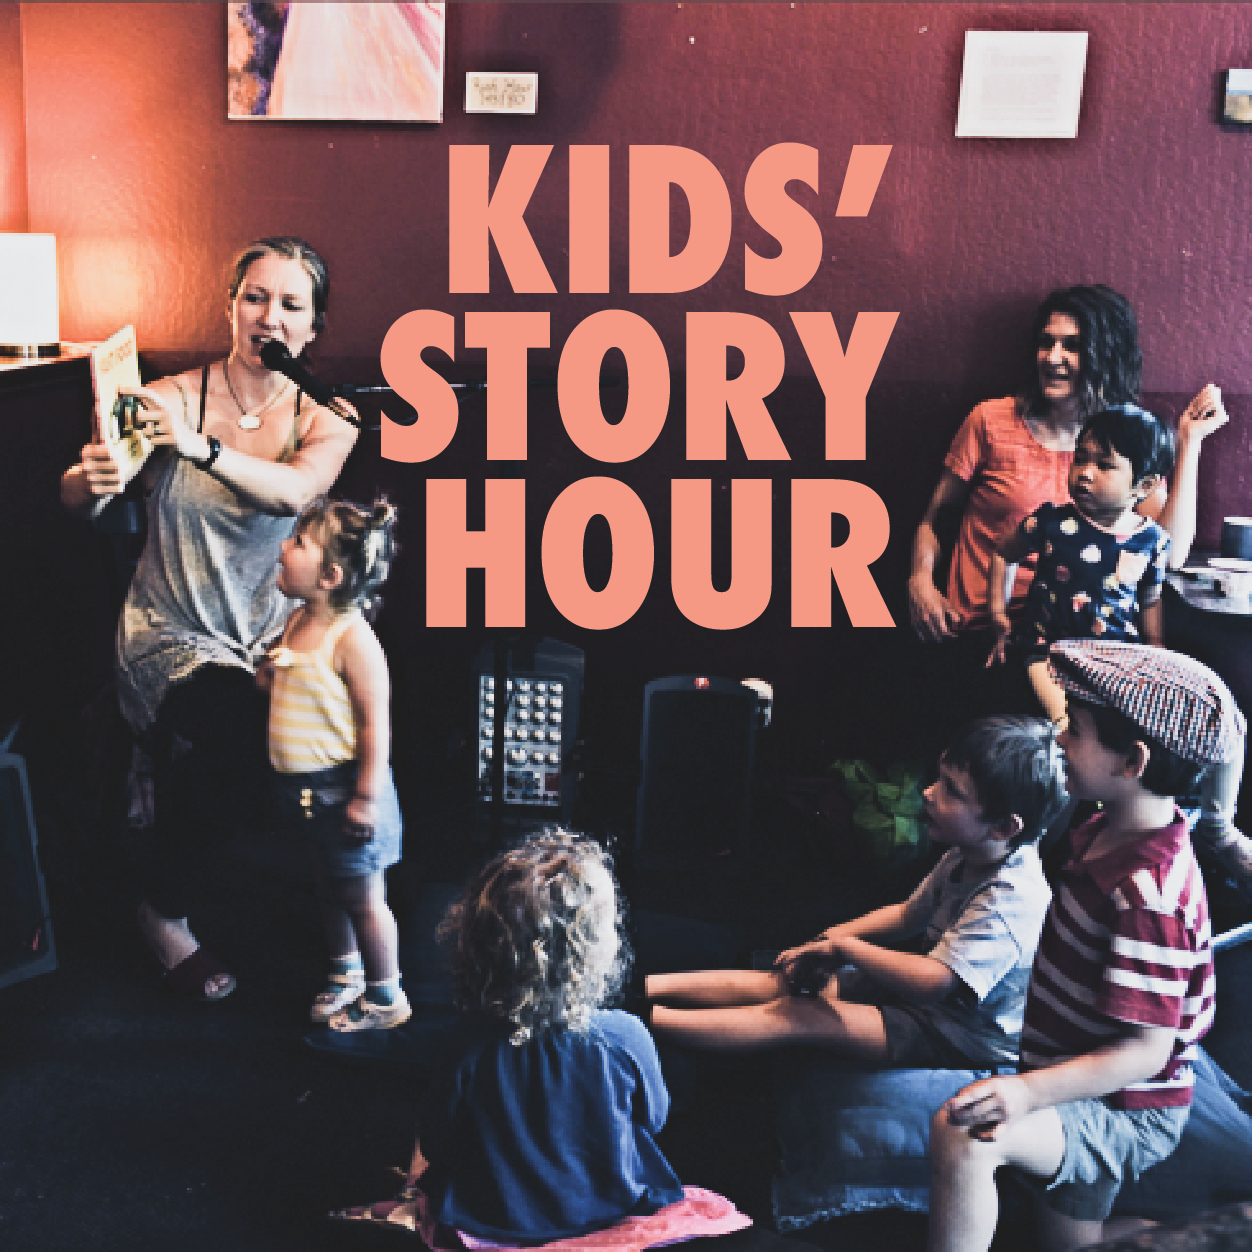 Join us for our Kids Story hour, downstairs on our 1st floor! Members of our Red Rock Community read stories and lead songs for our Red Rock kids!